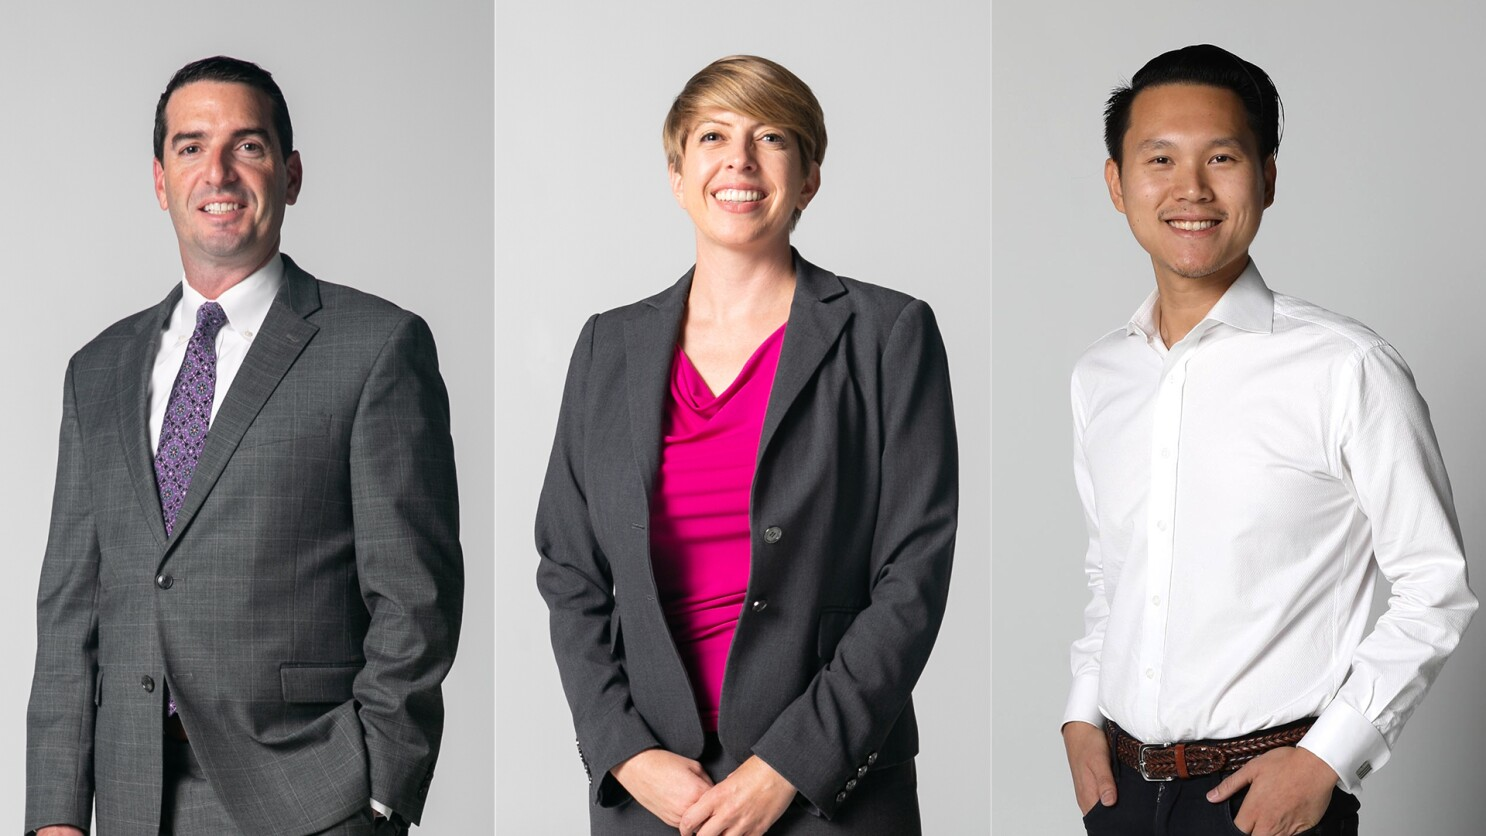 Meet the candidates for San Diego City Council District 5